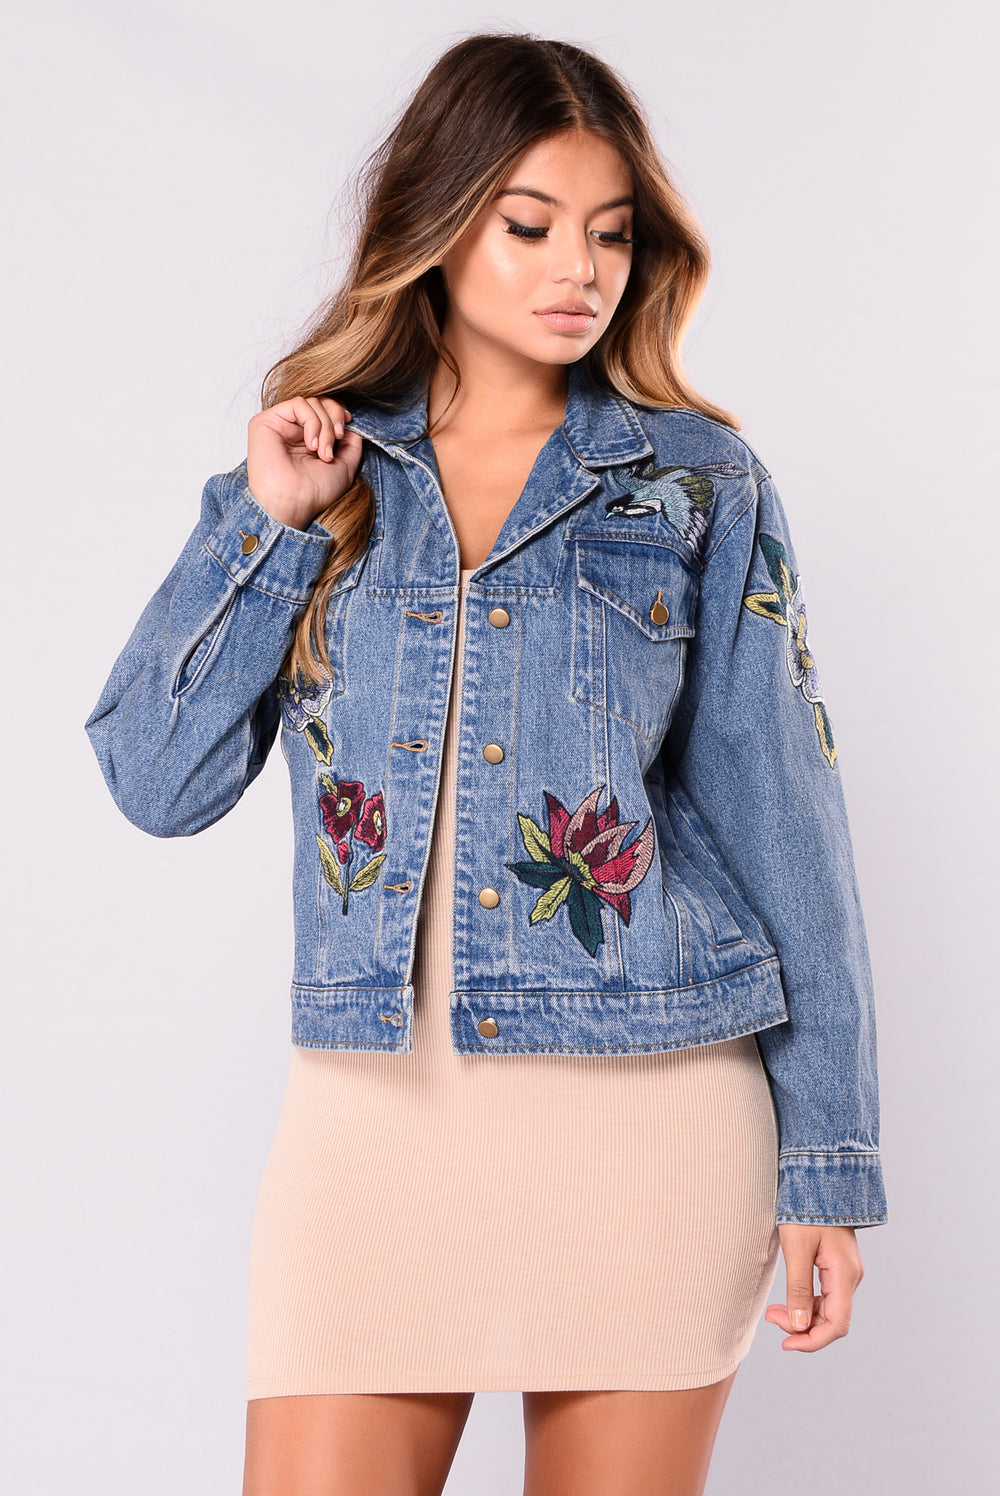 Faded And Floral Jacket - Denim